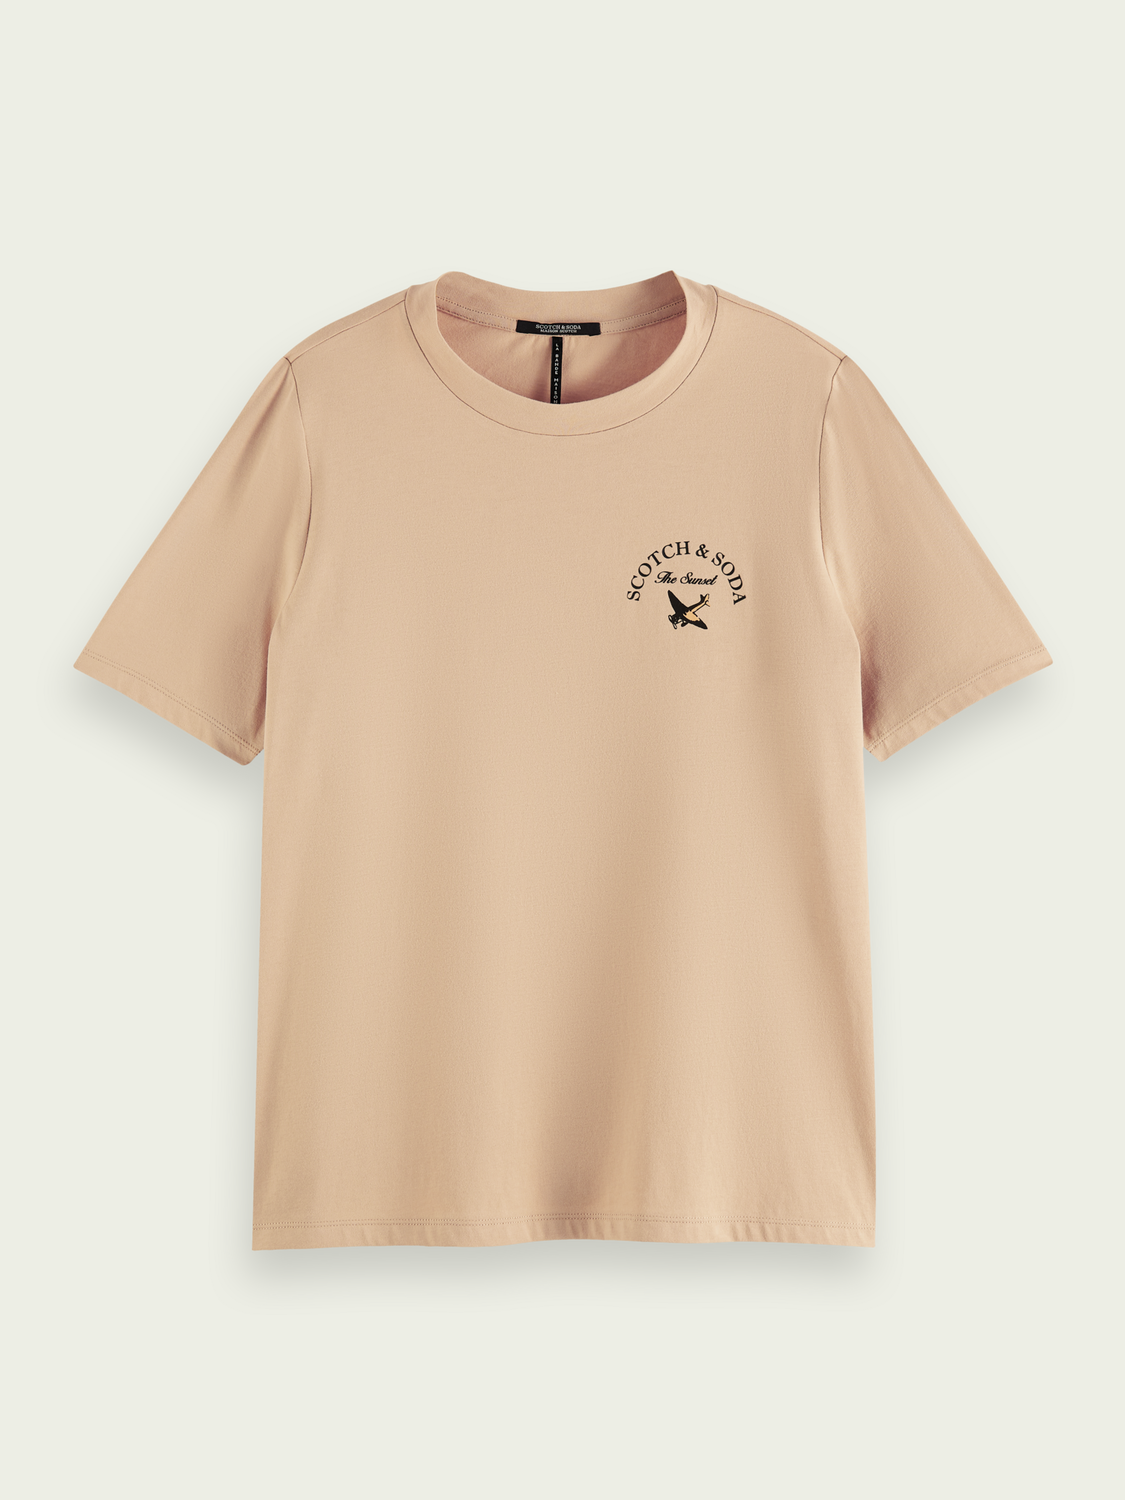 Women Relaxed-fit graphic organic cotton T-shirt